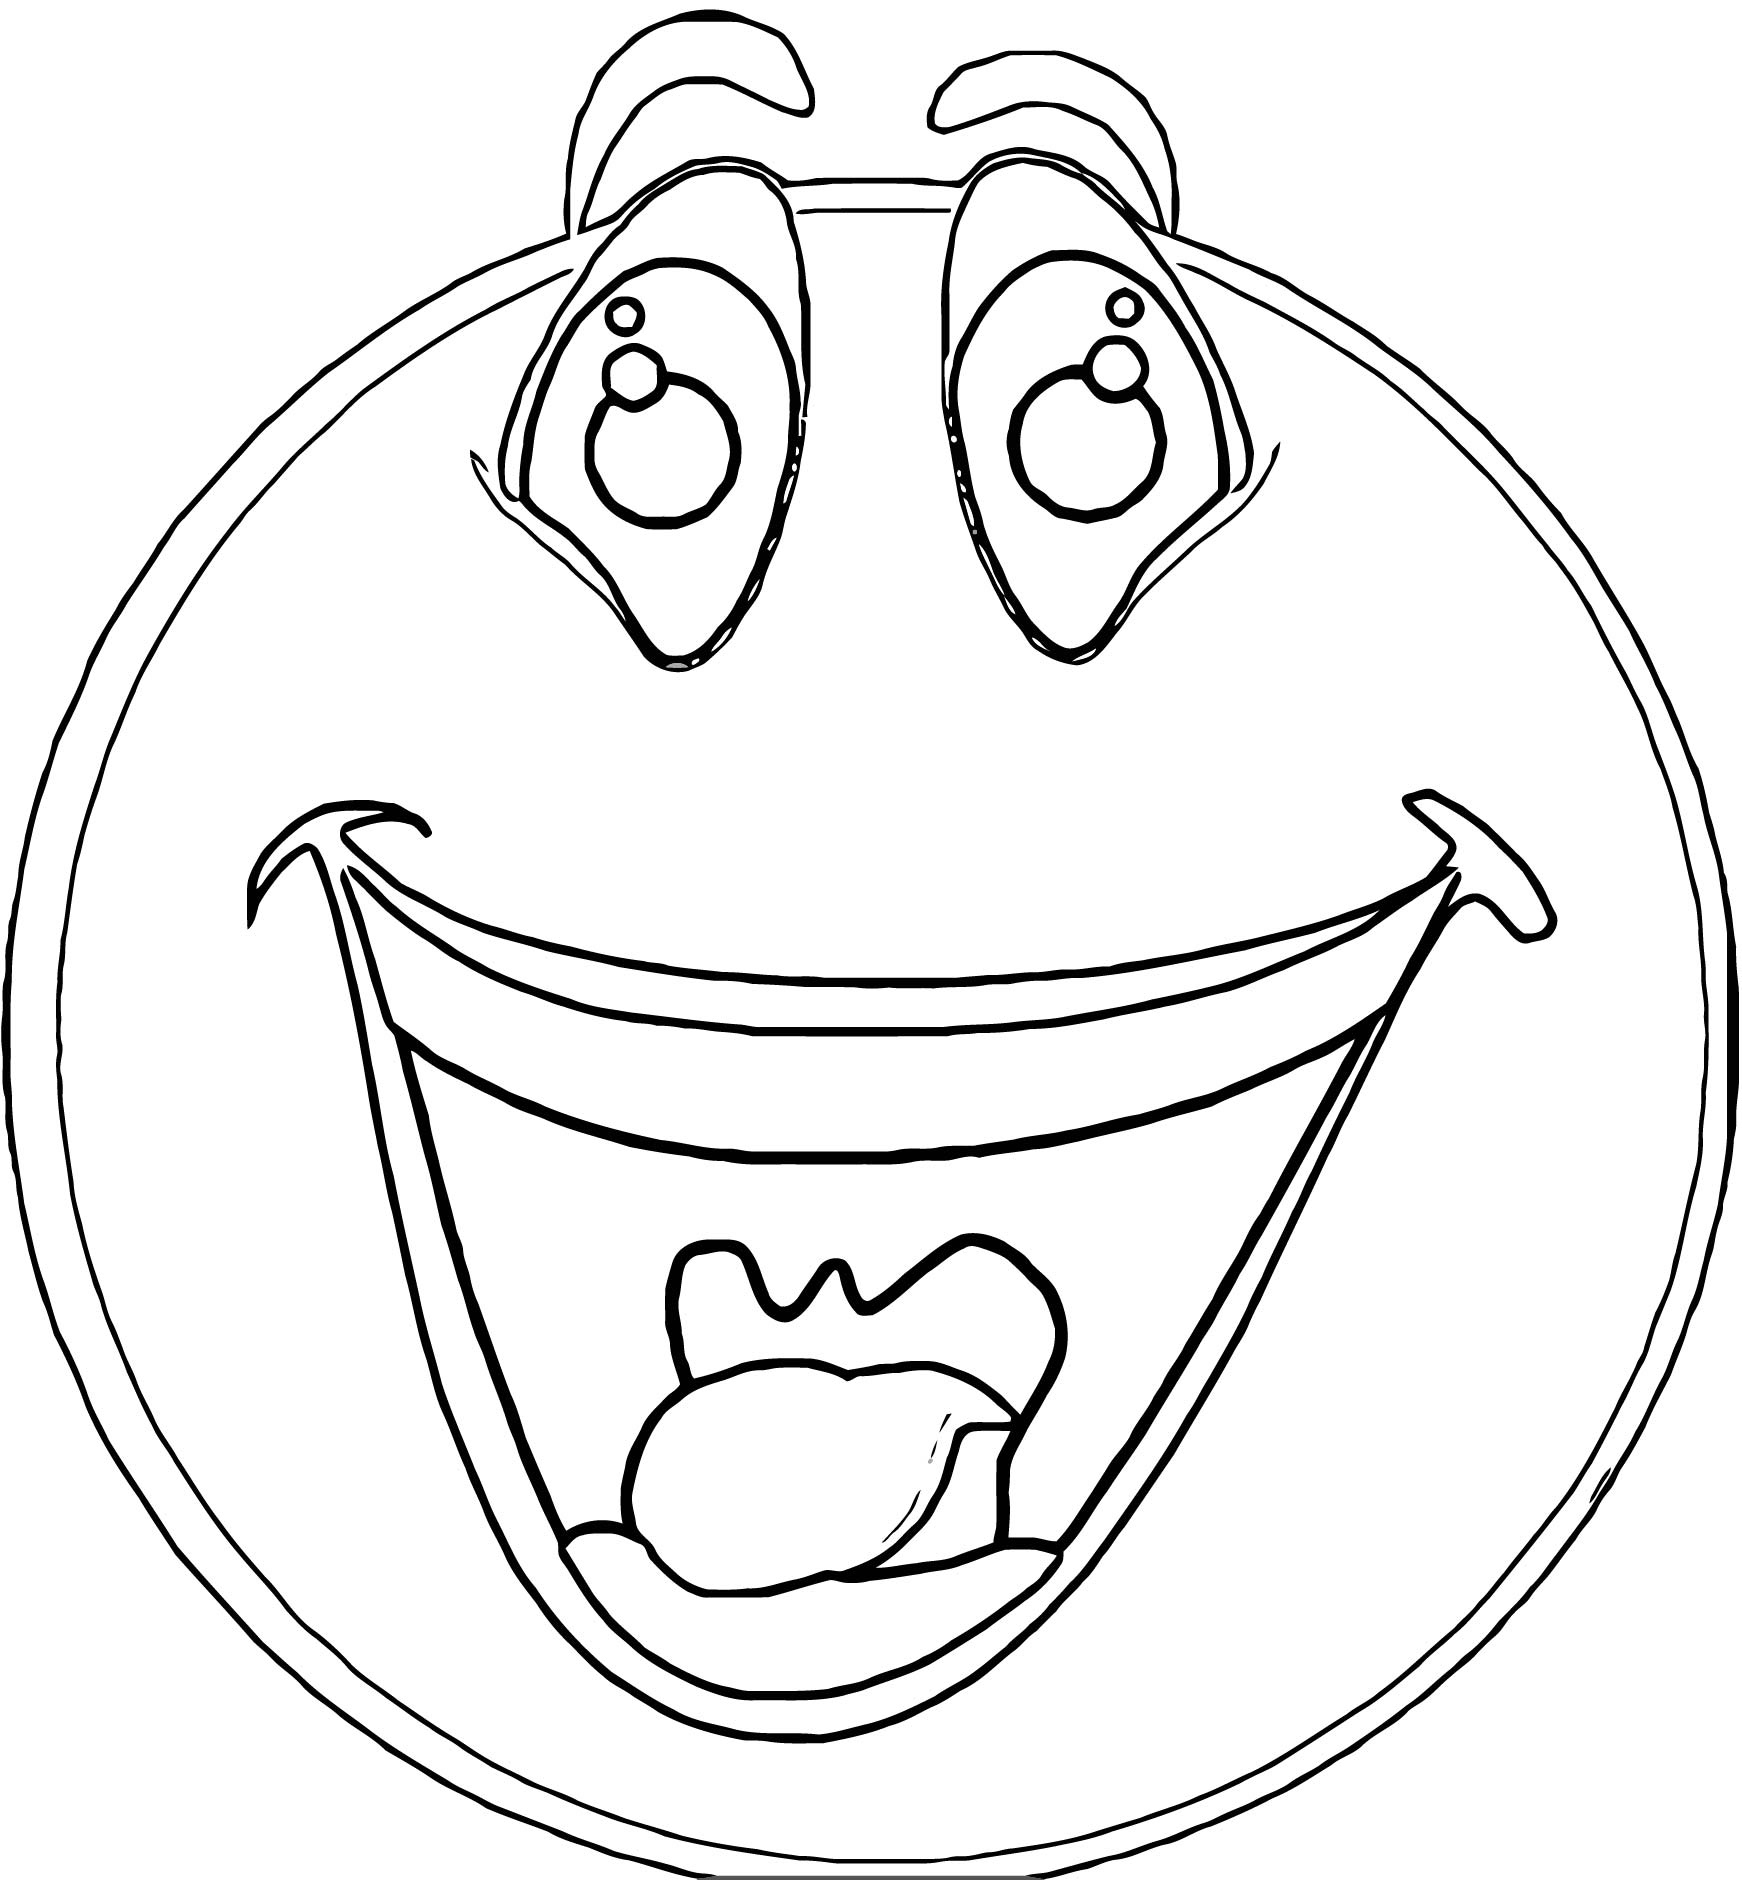 Face Images Coloring Page 31